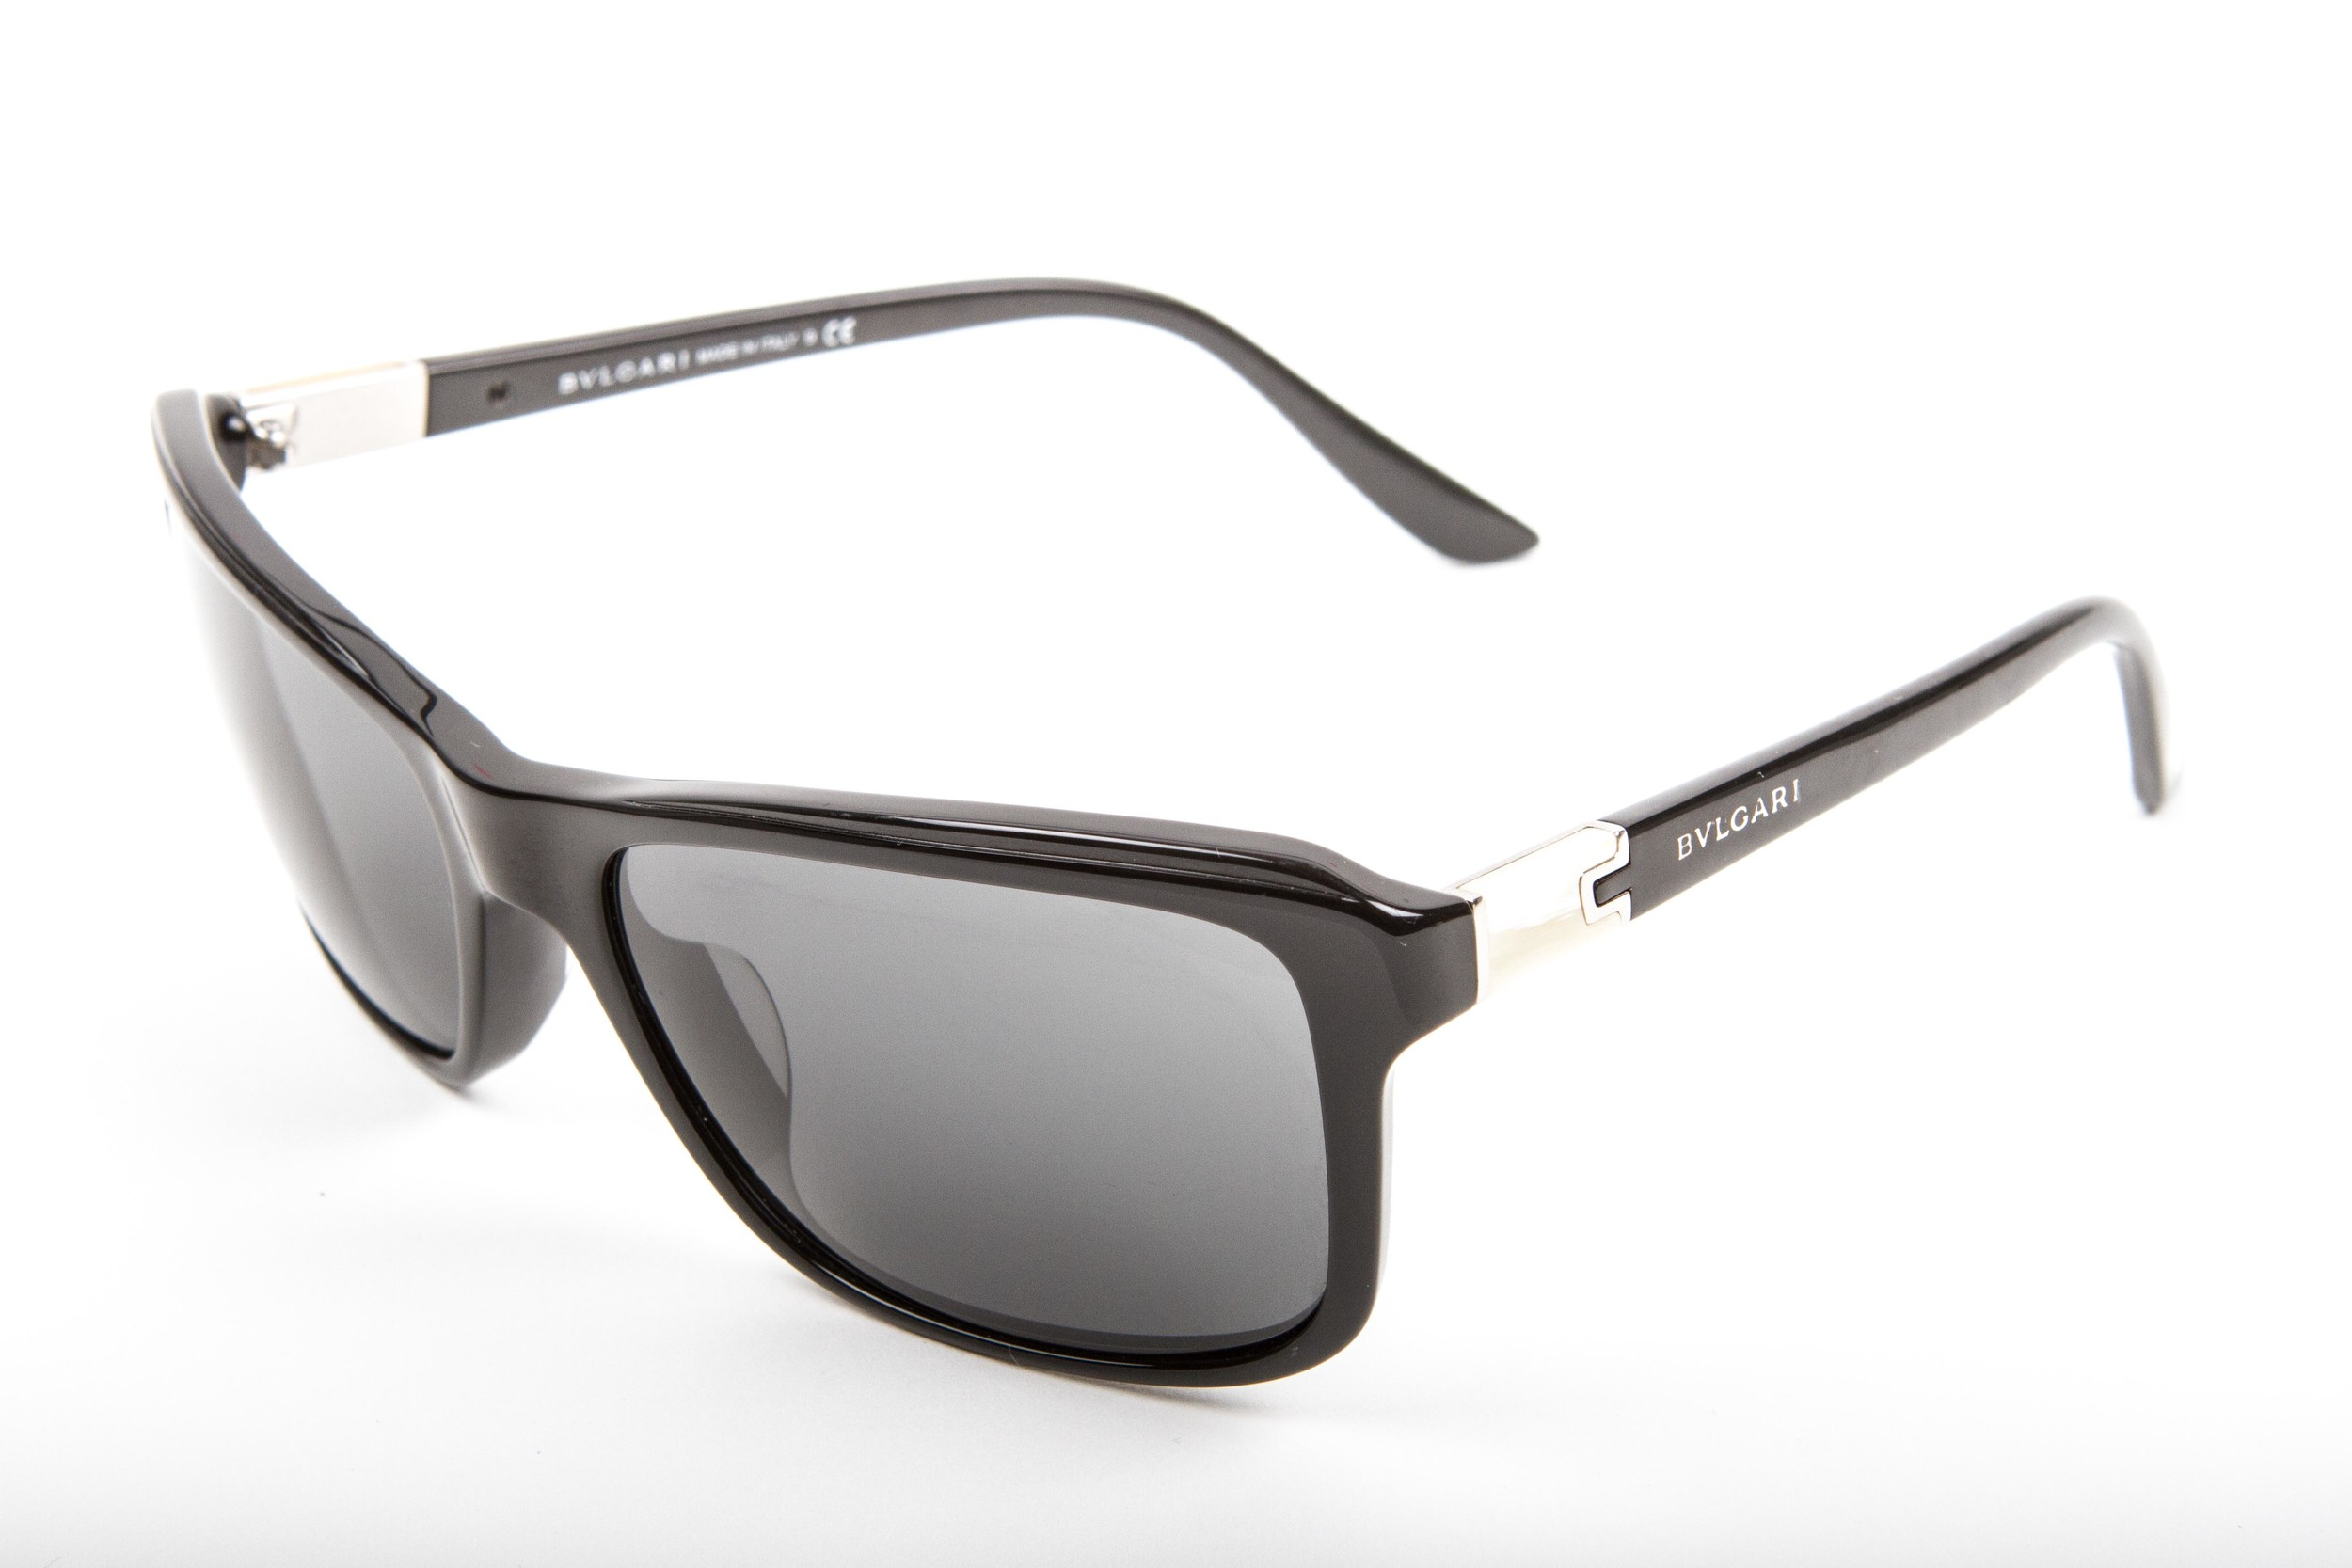 18cea6d485a28 Bvlgari Black with Silver zyloware — BFOCUS-EYEWEAR